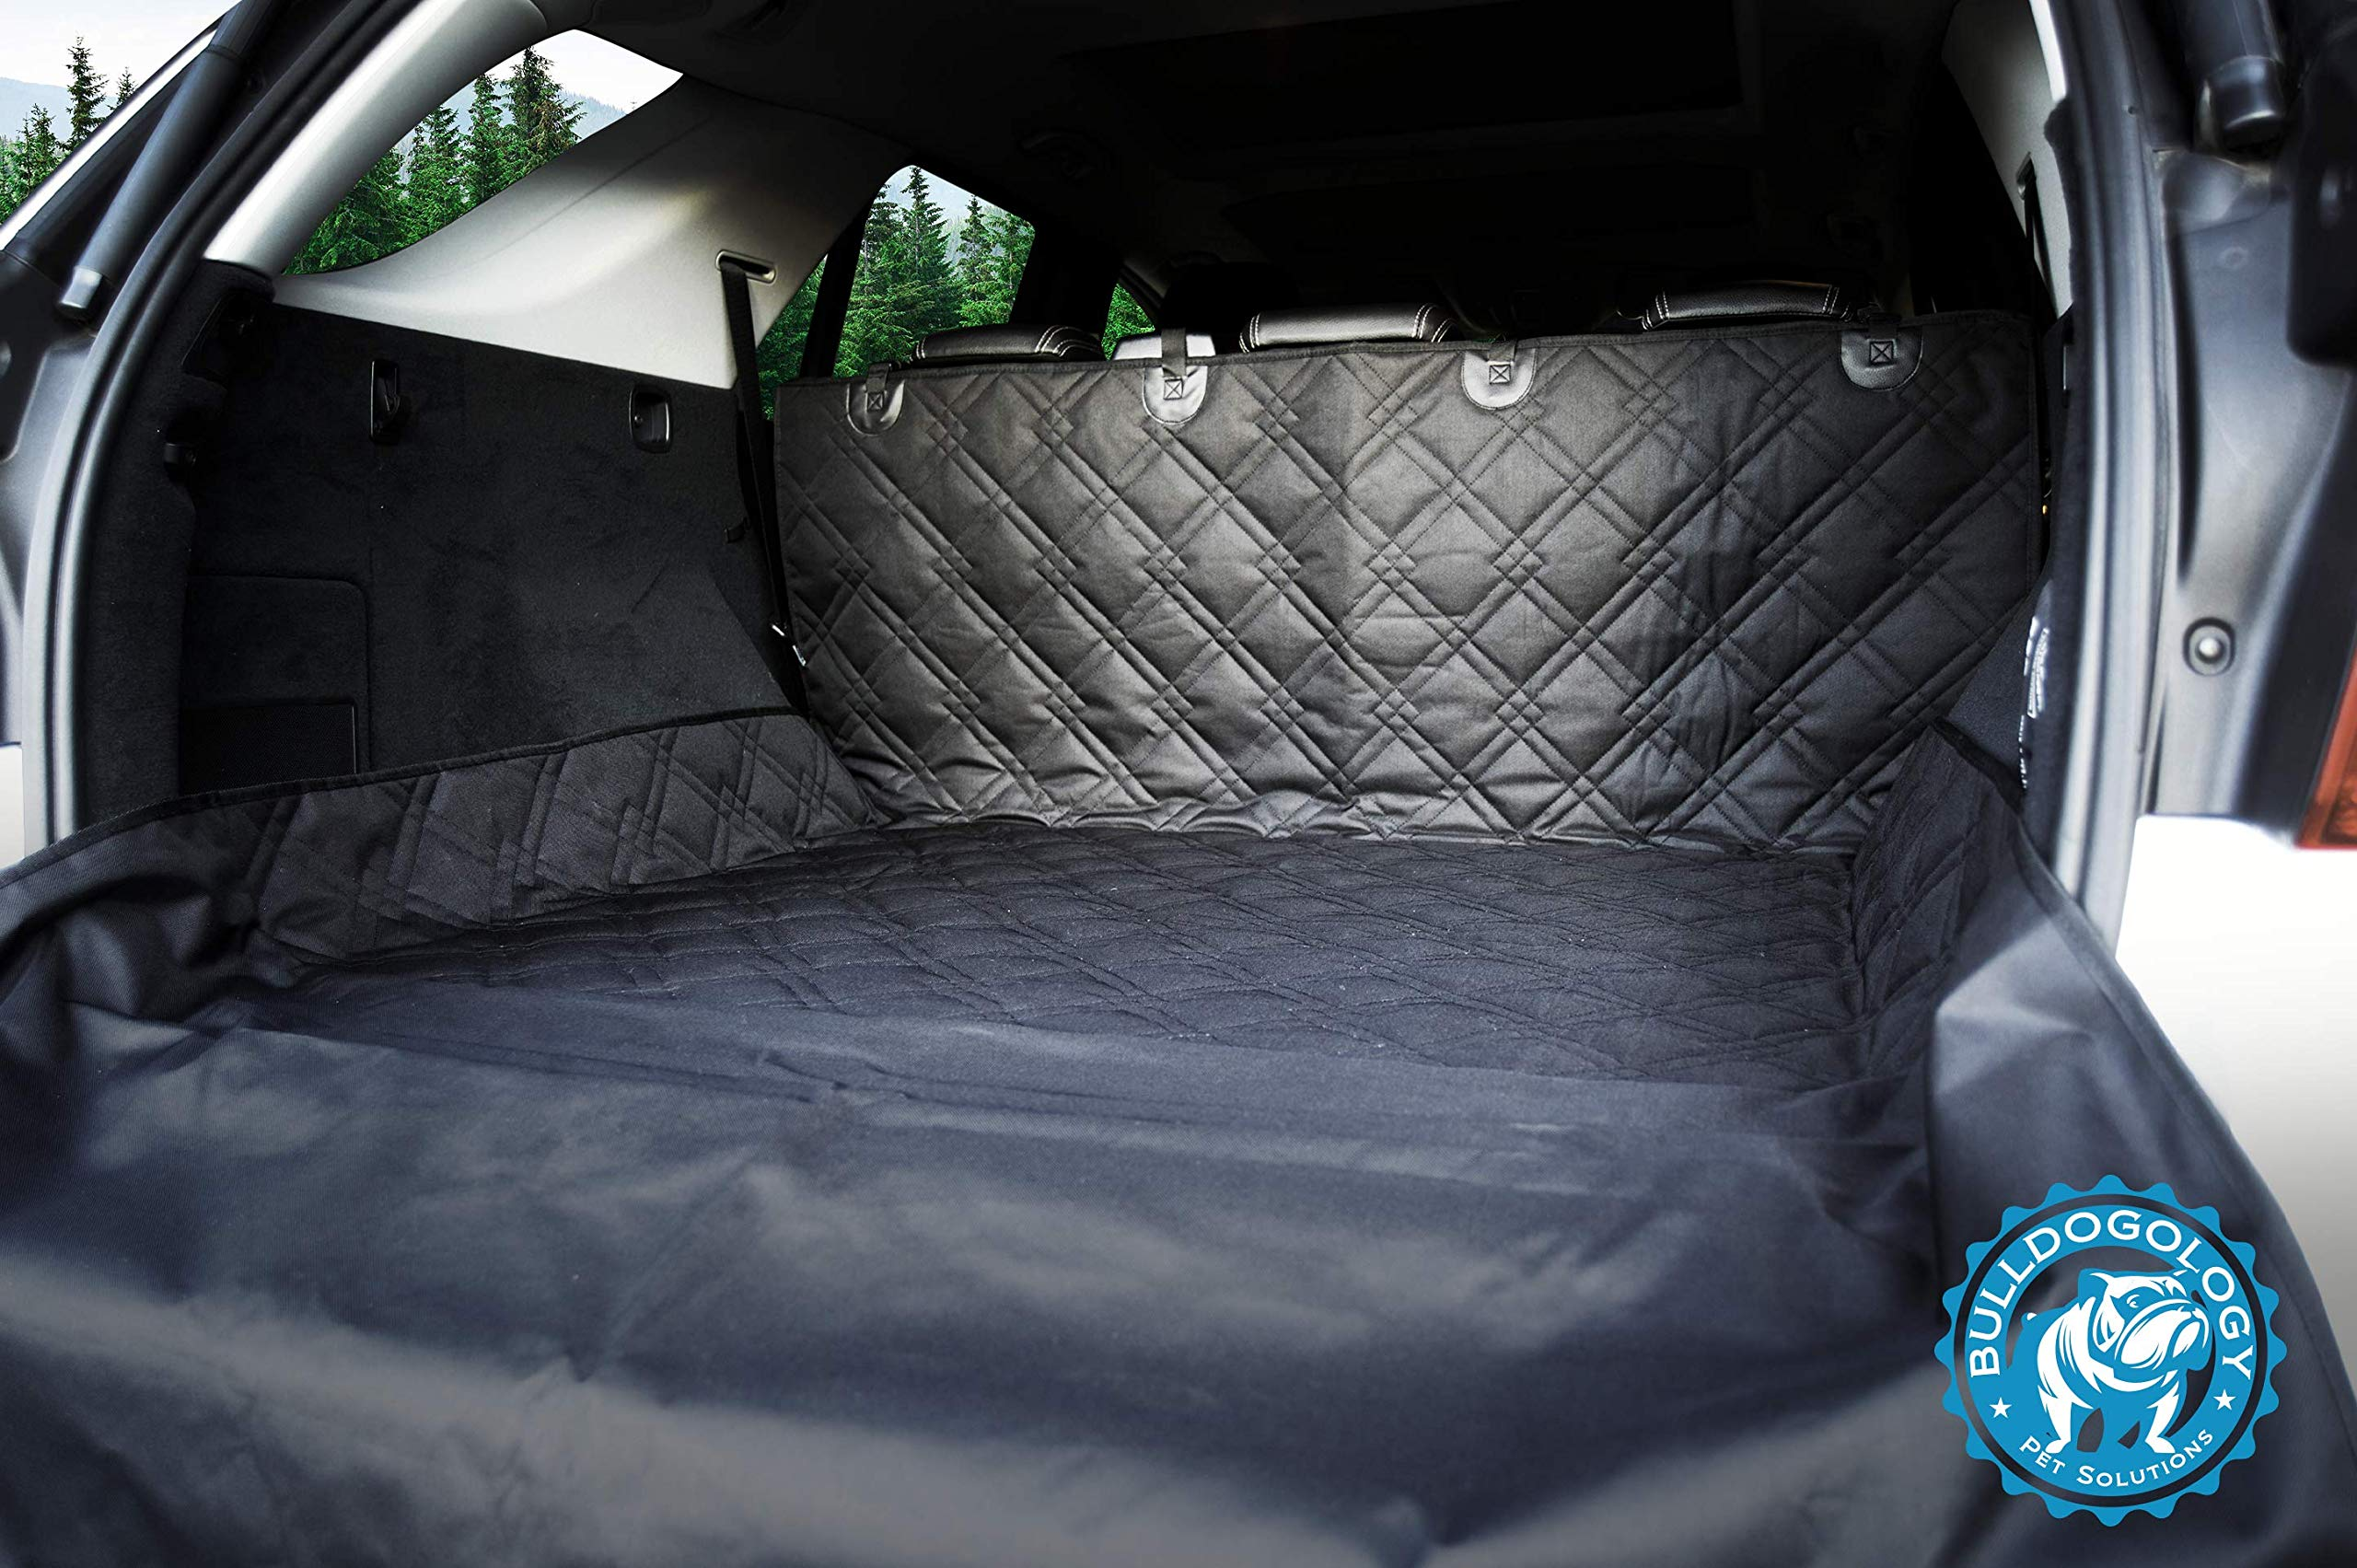 Bulldogology Premium SUV Cargo Liner Seat Cover for Dogs - Heavy Duty, Waterproof, Nonslip Backing, Washable, with Bumper Flap Protection (Large, Black)